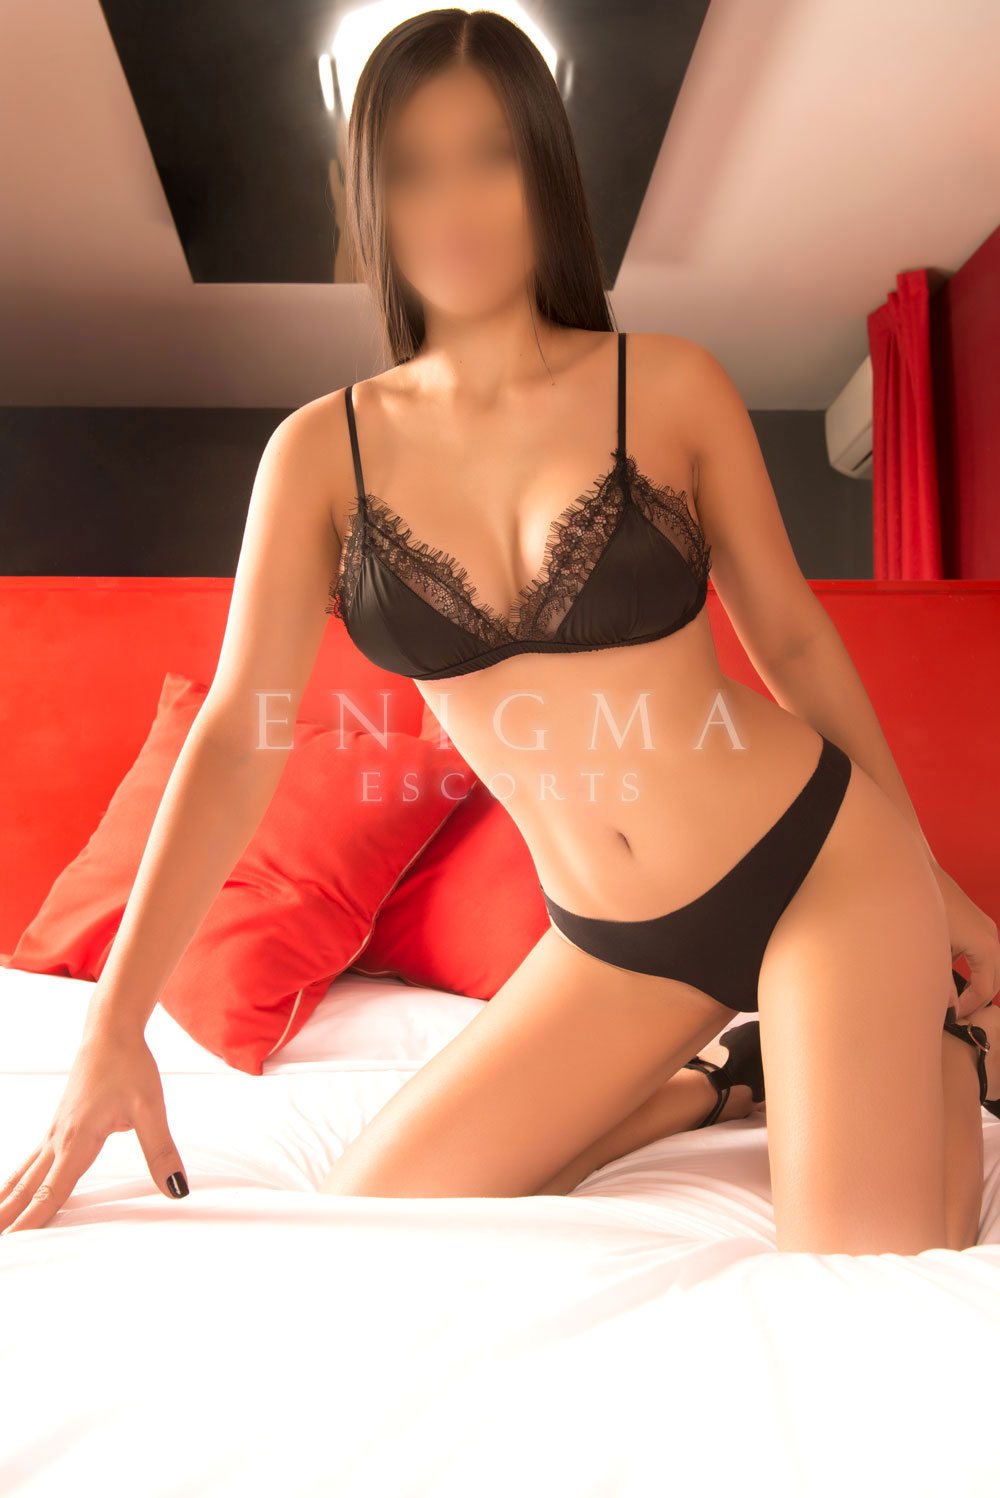 escort-venezolana-madrid-domicilios